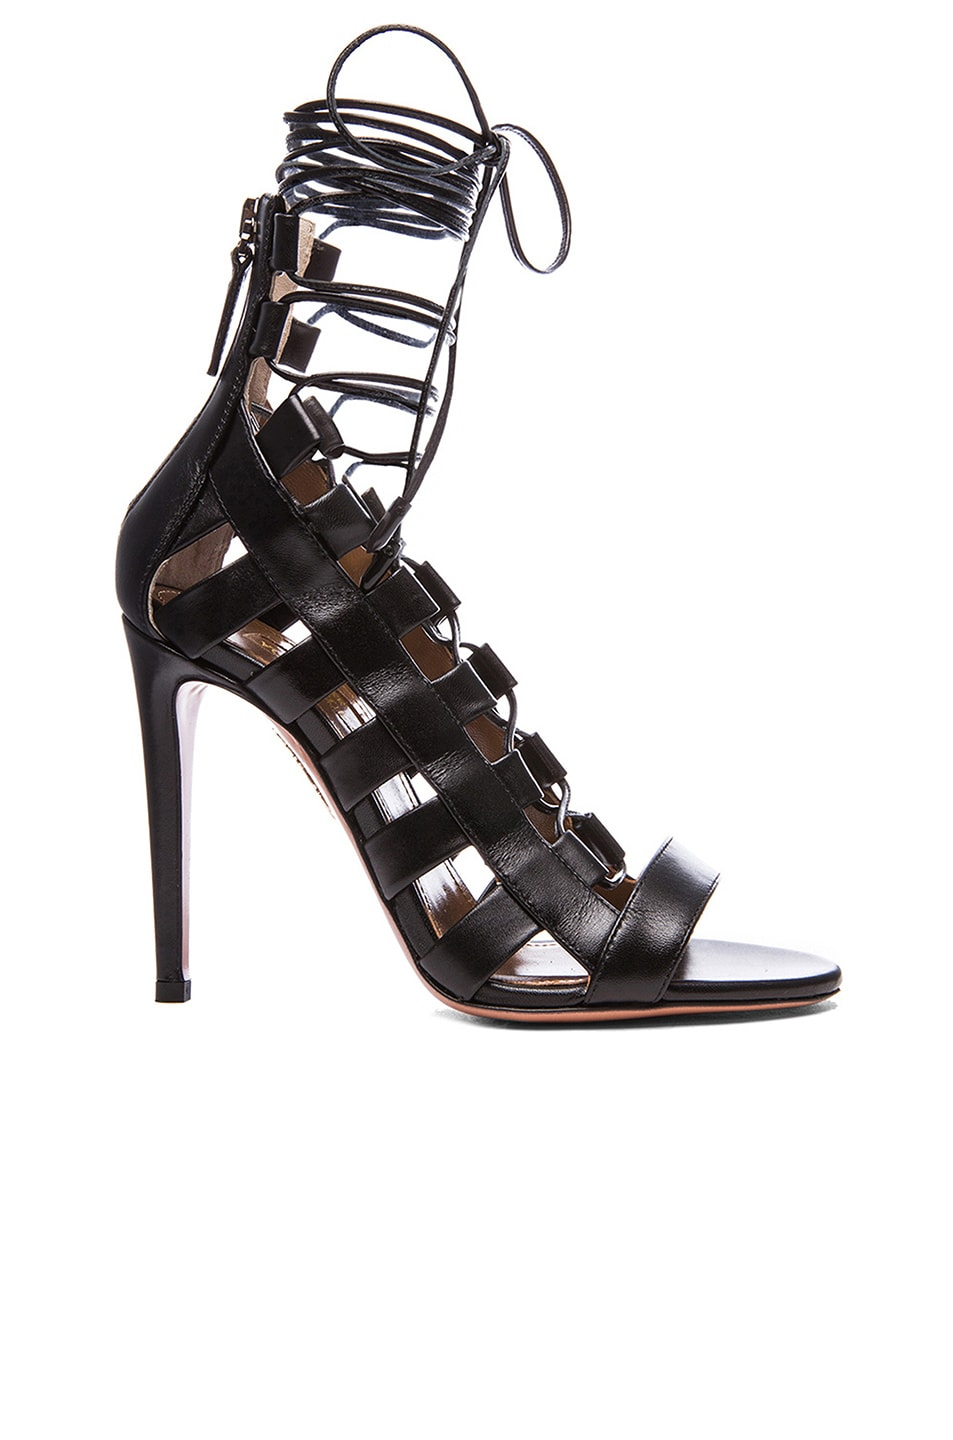 7f60284b4f8 Image 1 of Aquazzura Amazon Leather Lace Up Sandals in Black